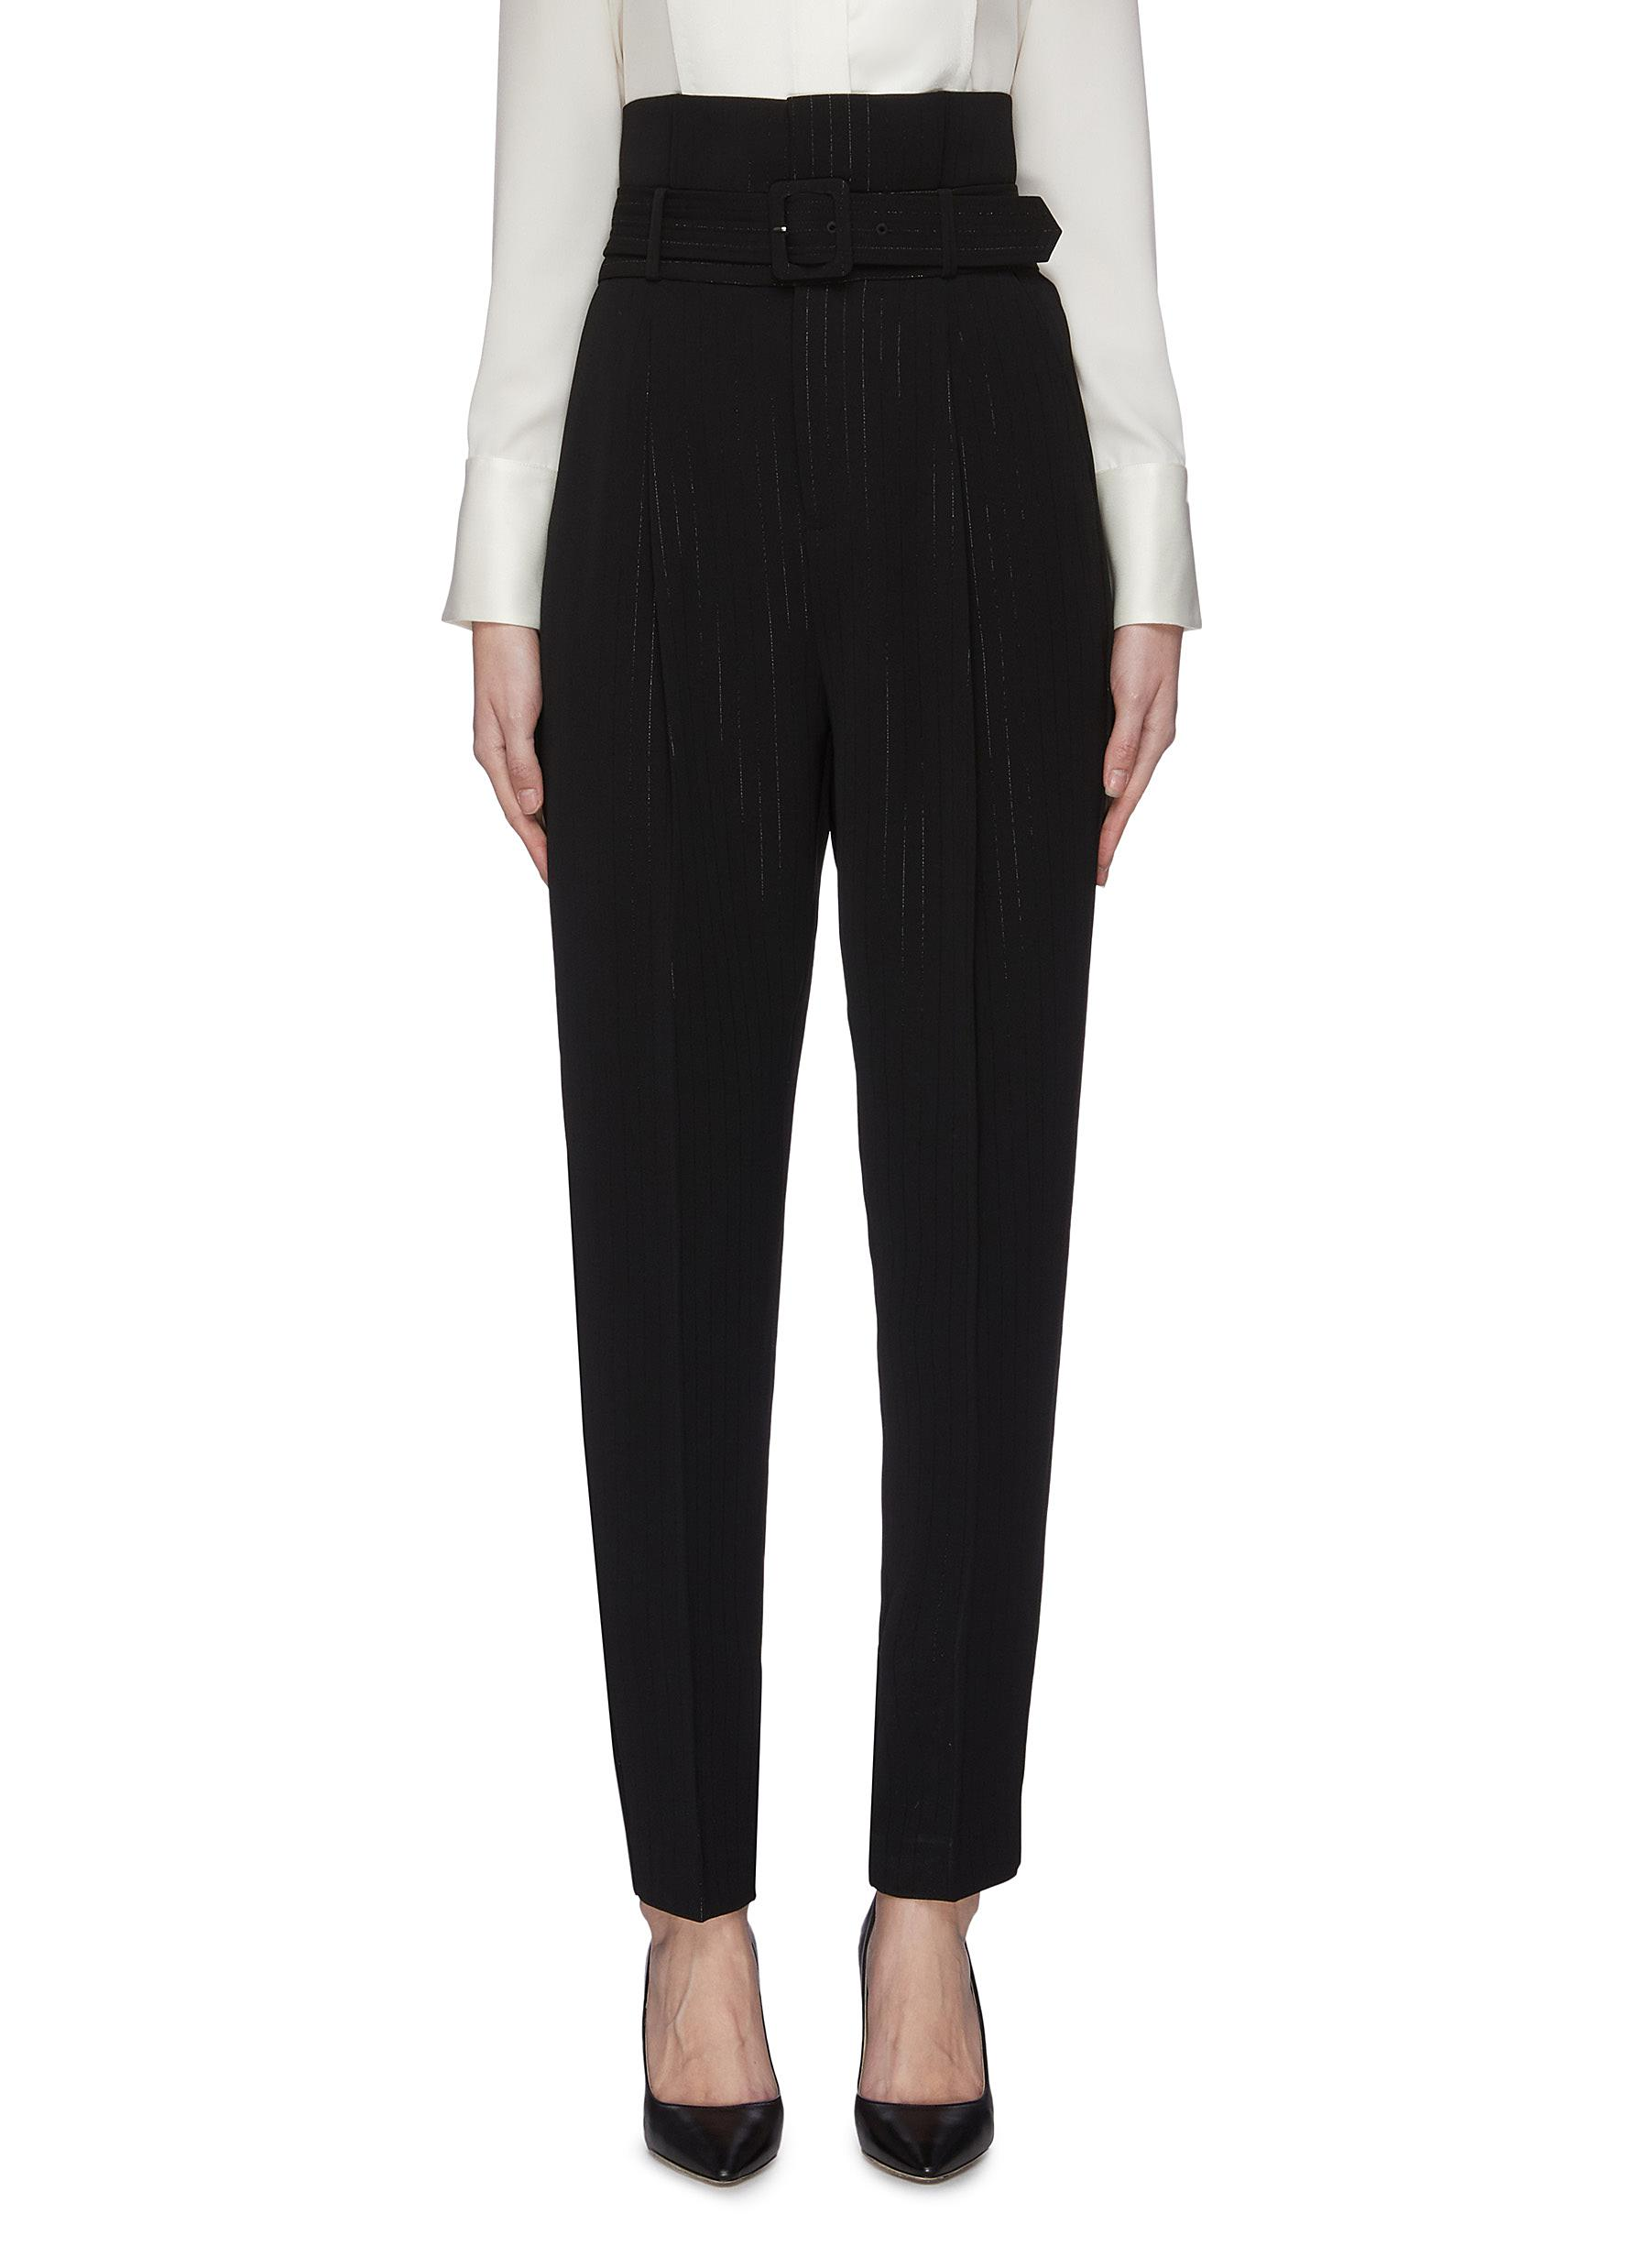 Buy Equipment Pants & Shorts 'Alloisa' belted suiting pants